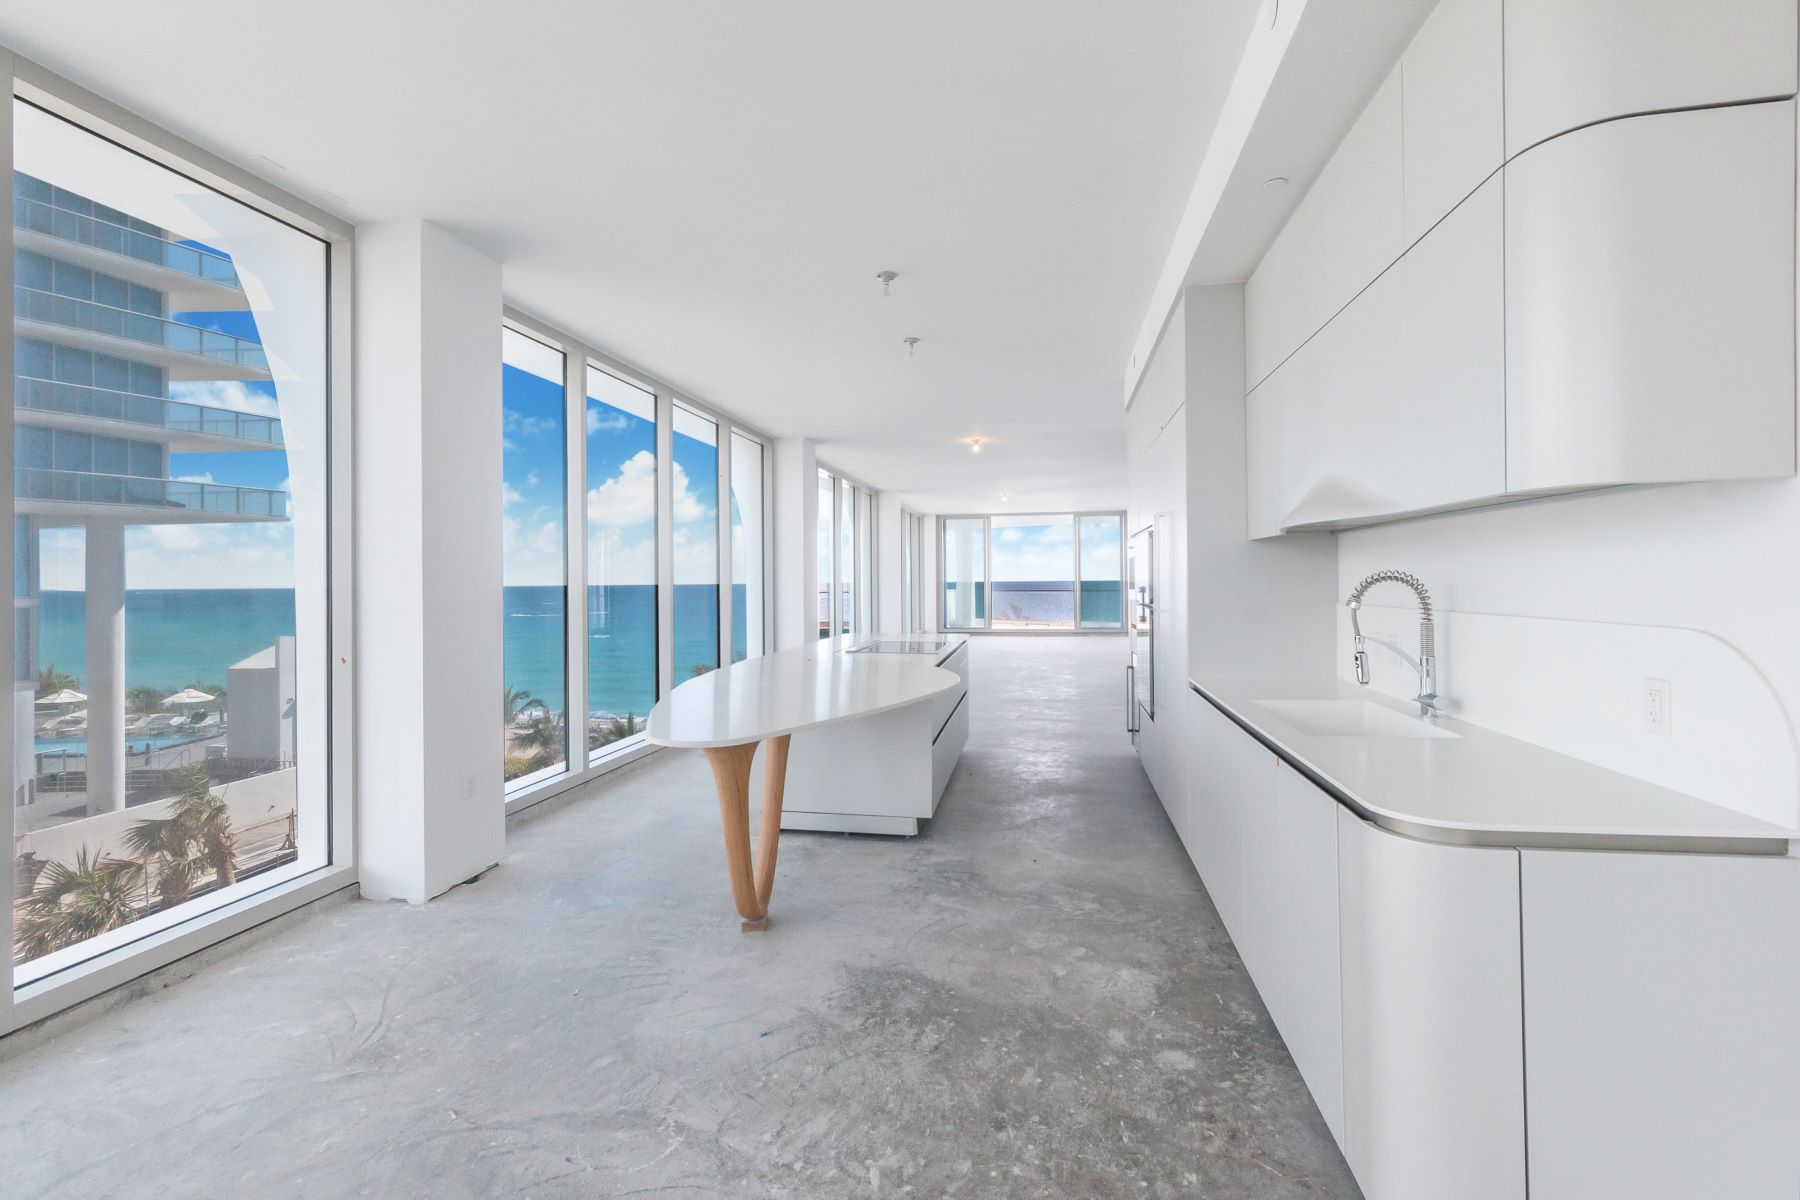 Condominiums for Sale at 16901 Collins Ave 505, Sunny Isles Beach, Florida 33160 United States